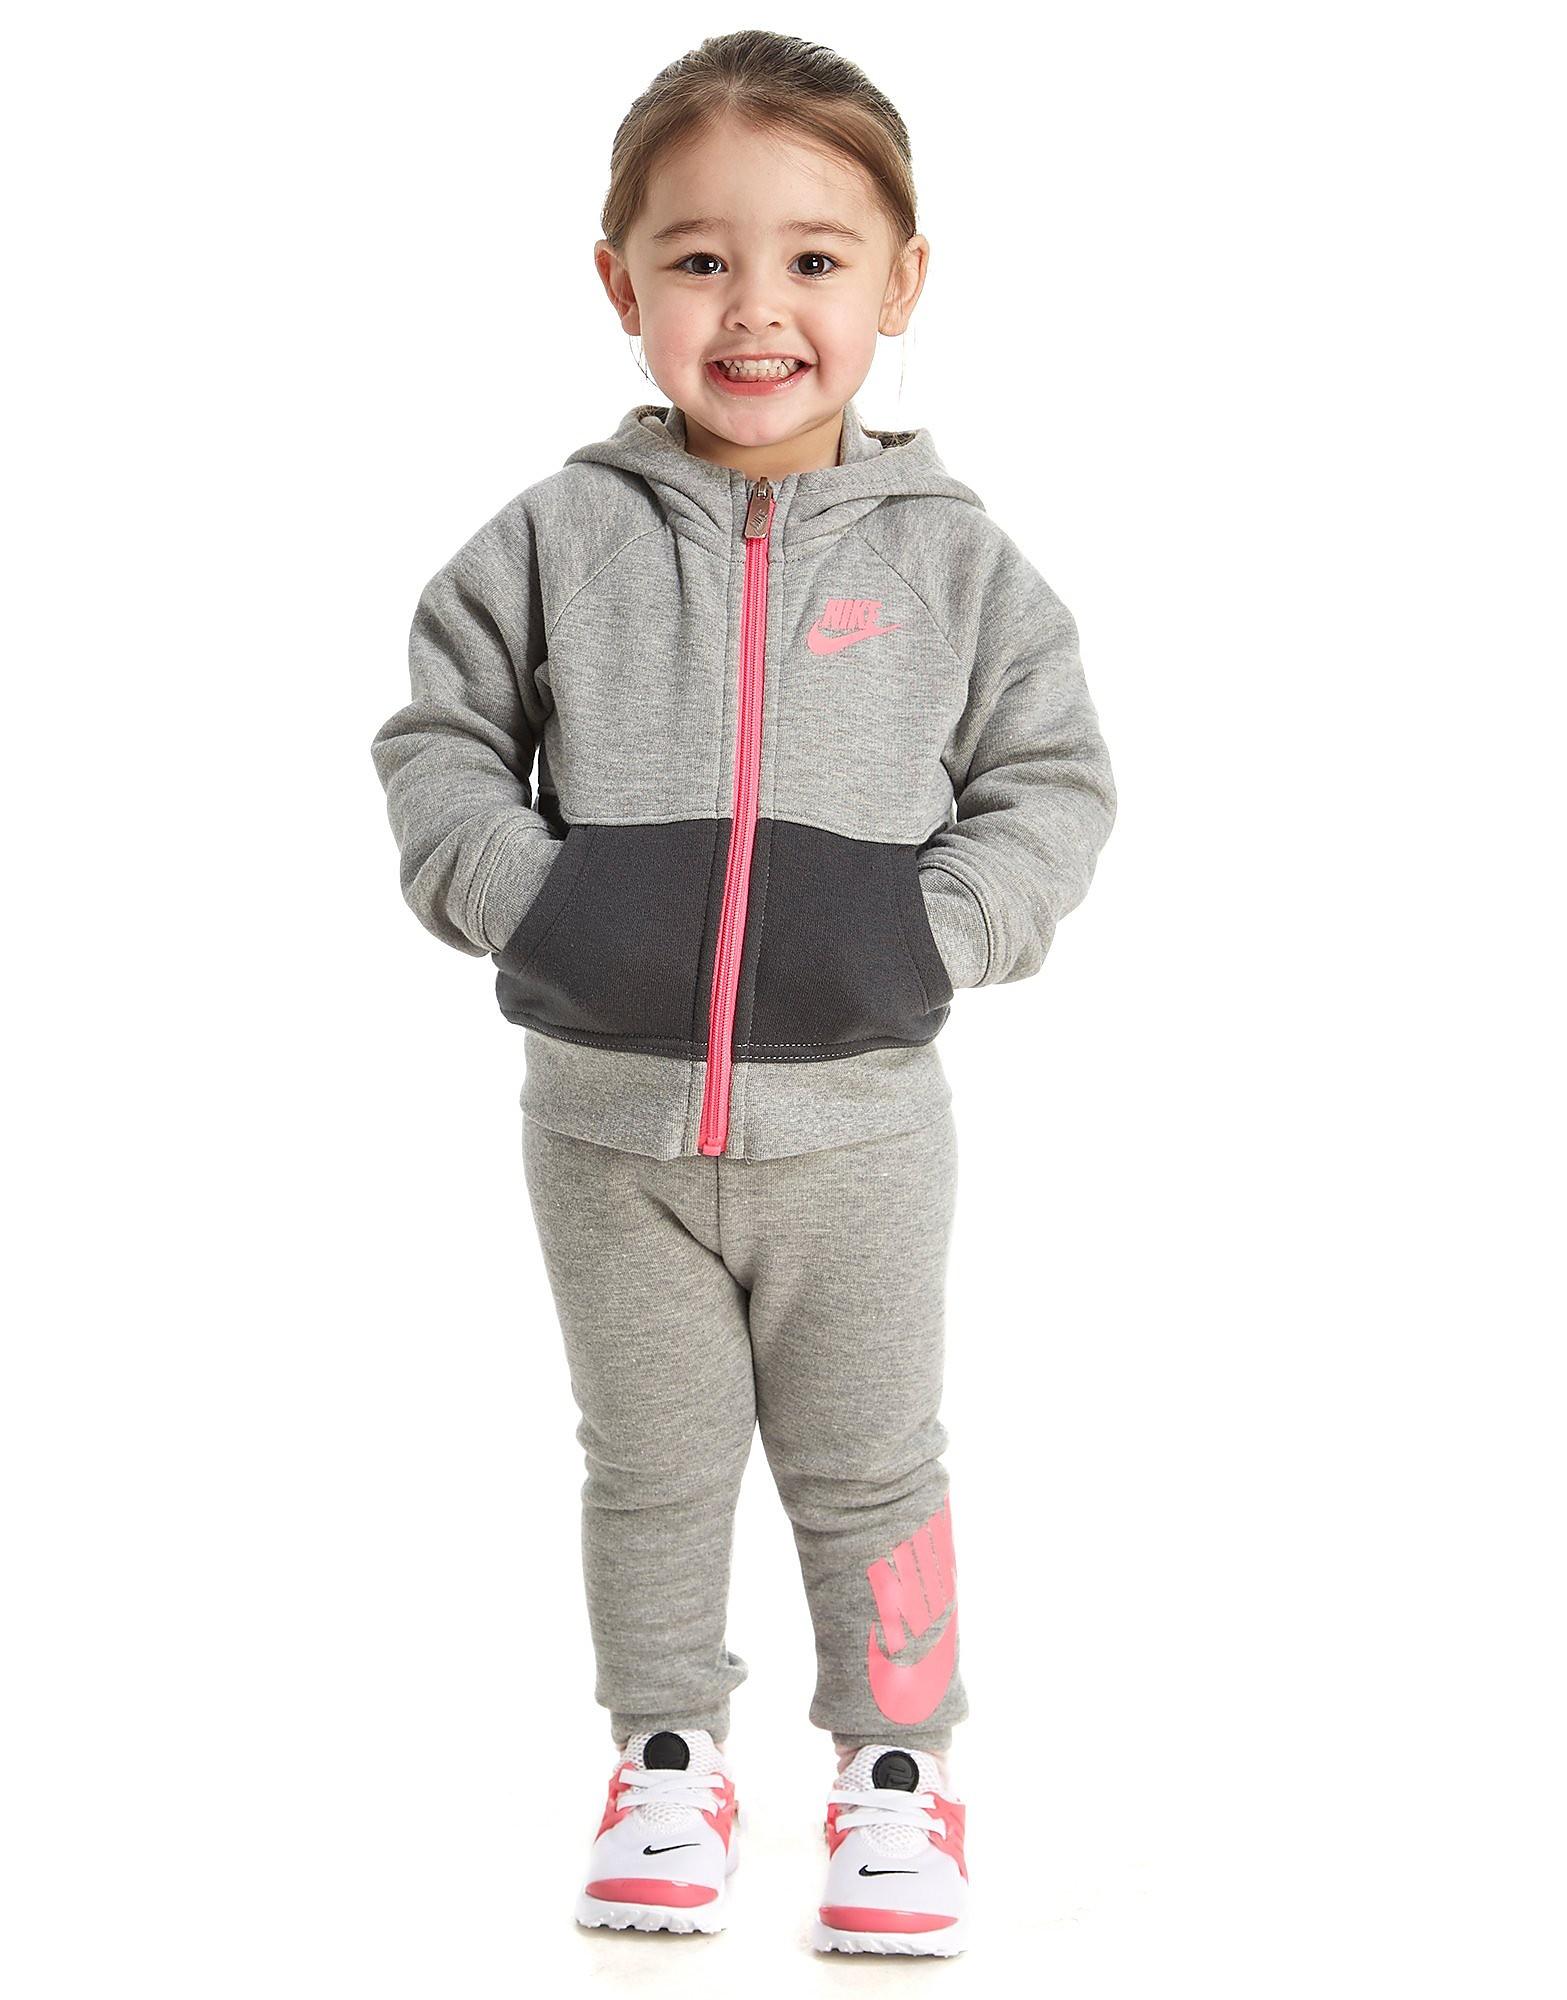 Nike Girls' Futura Suit Infant